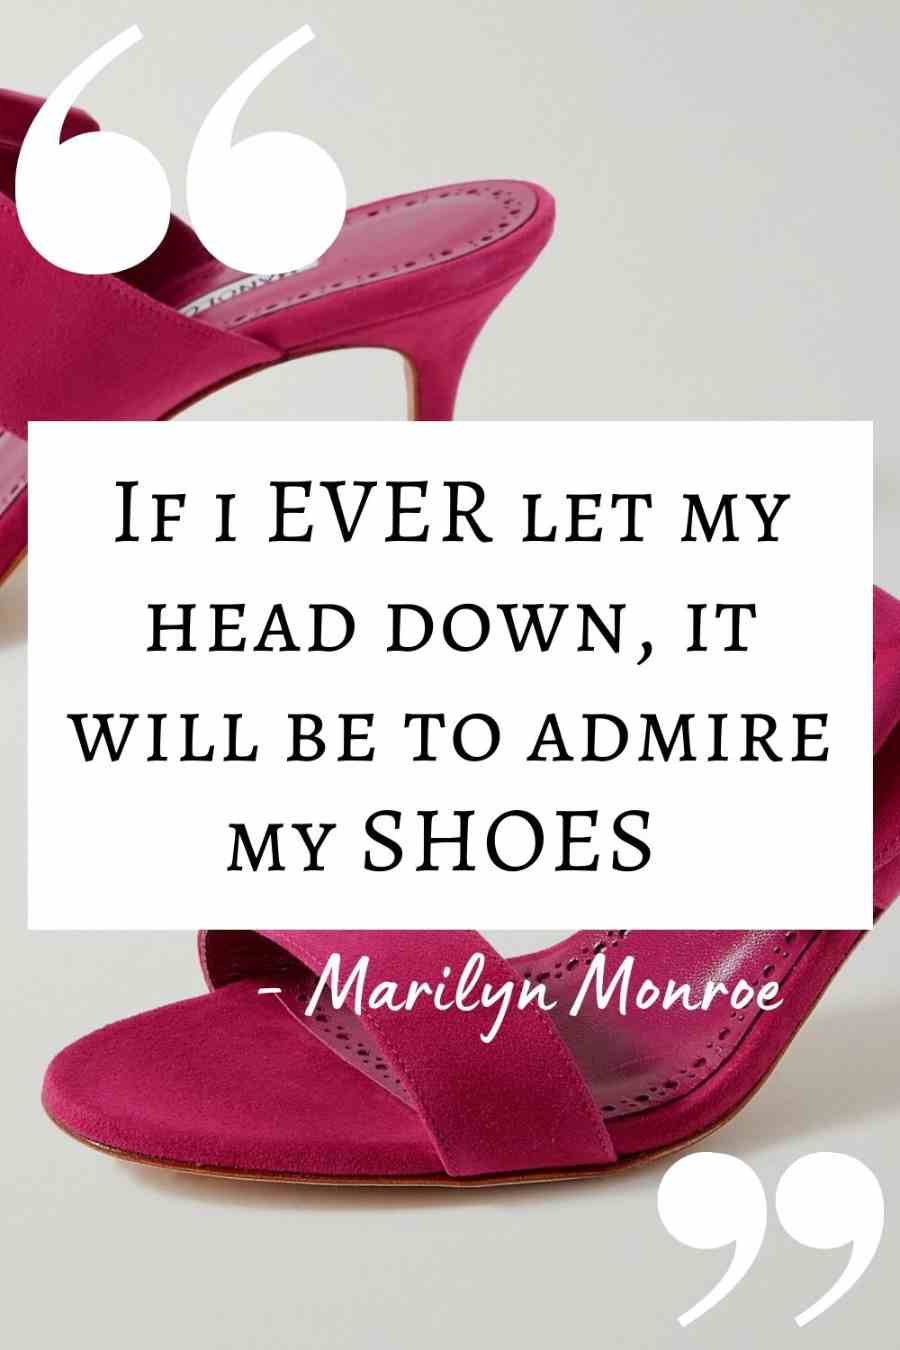 """Shoe Quote by Marilyn Monroe about shoes: """"If I ever let my head down, it will be to admire my shoes"""" text overlay on pink shoes."""